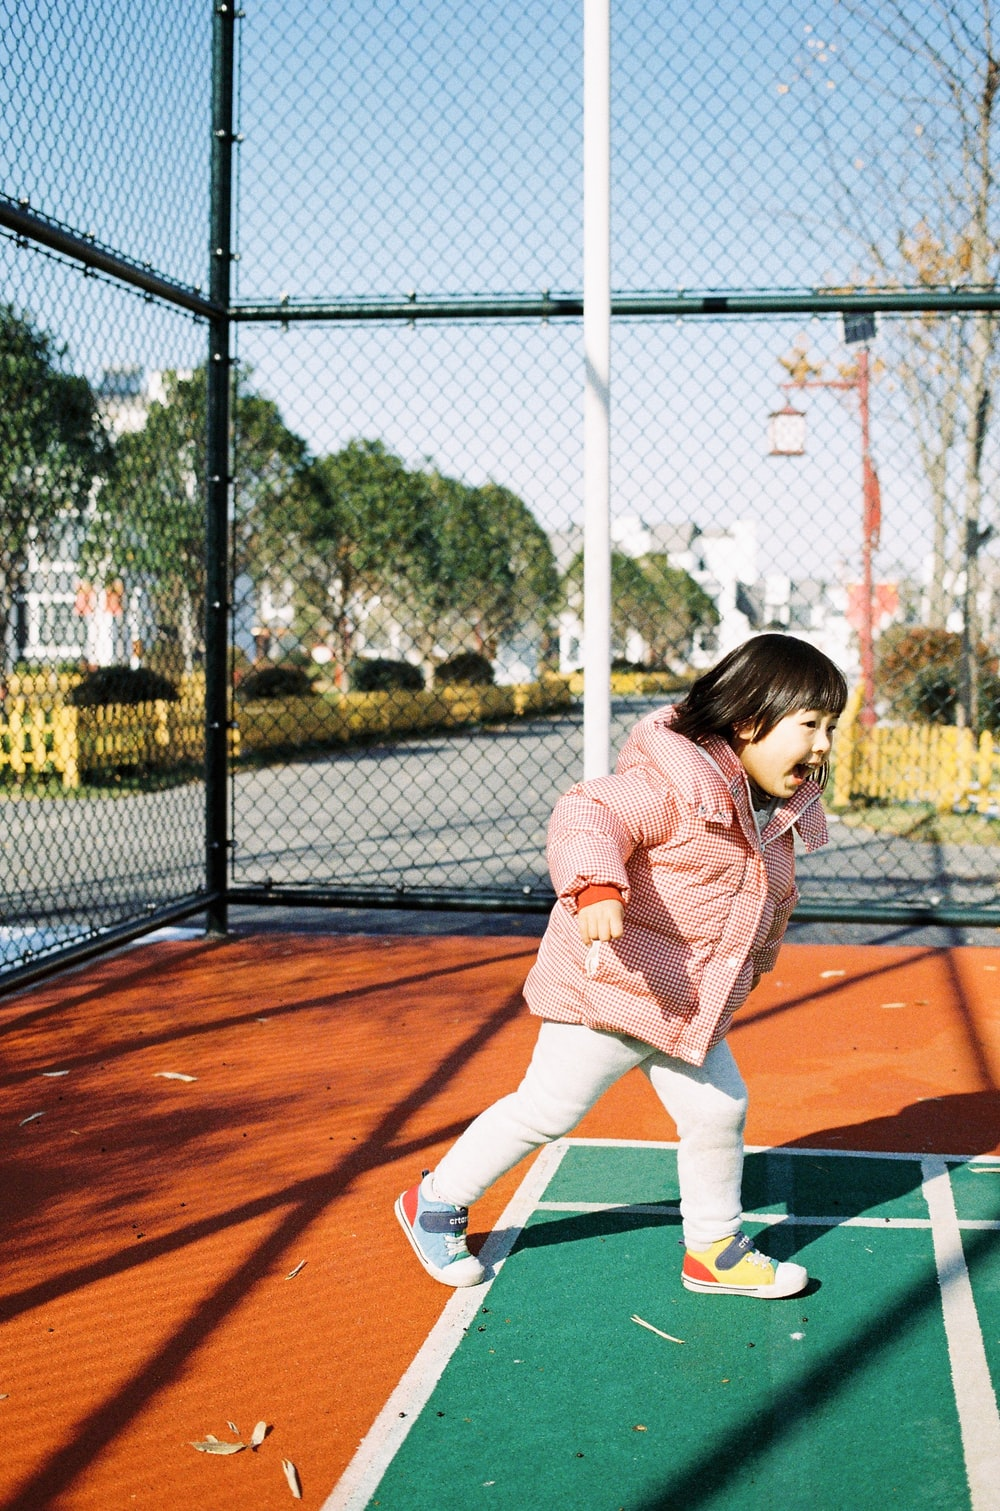 girl in pink jacket and white pants playing tennis during daytime